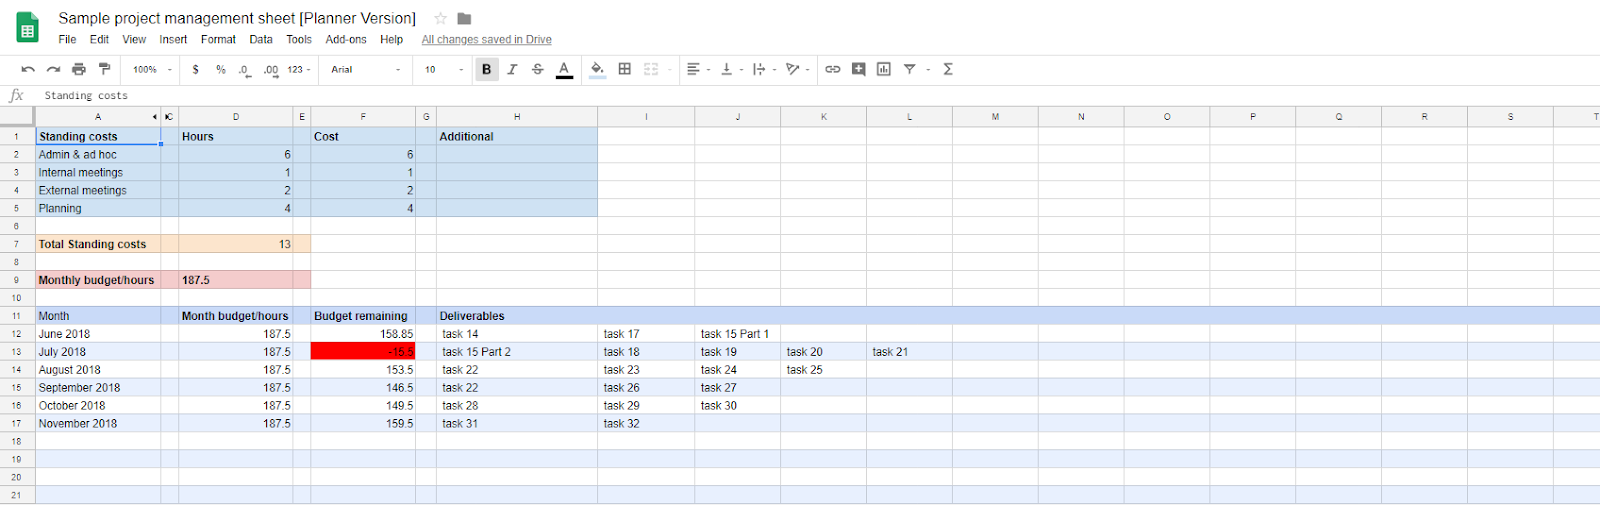 Visualizing Time: A Project Management How-To Using Google Sheets - Moz